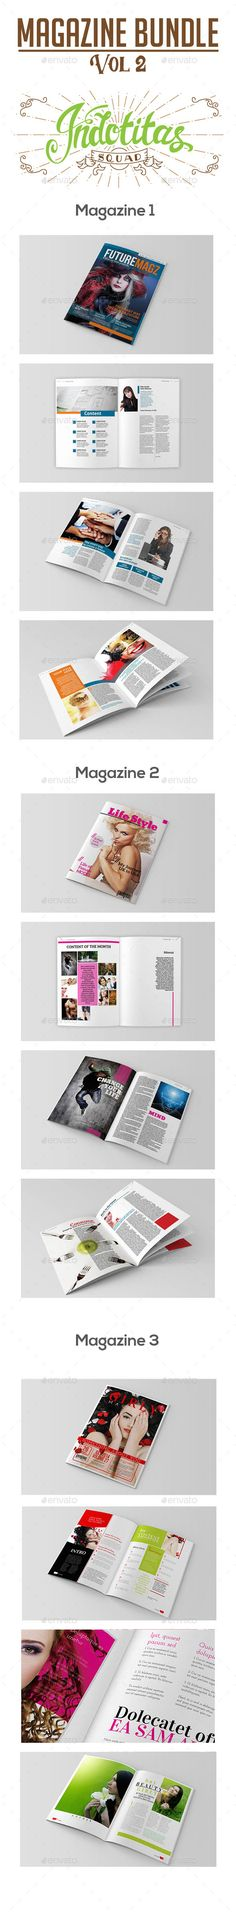 Magazine Template Bundle Vol 2 by indotitas Magazine Template Bundle Vol 2 that can be used for any type of industry. This item fully editable and customizable. Features :Pa